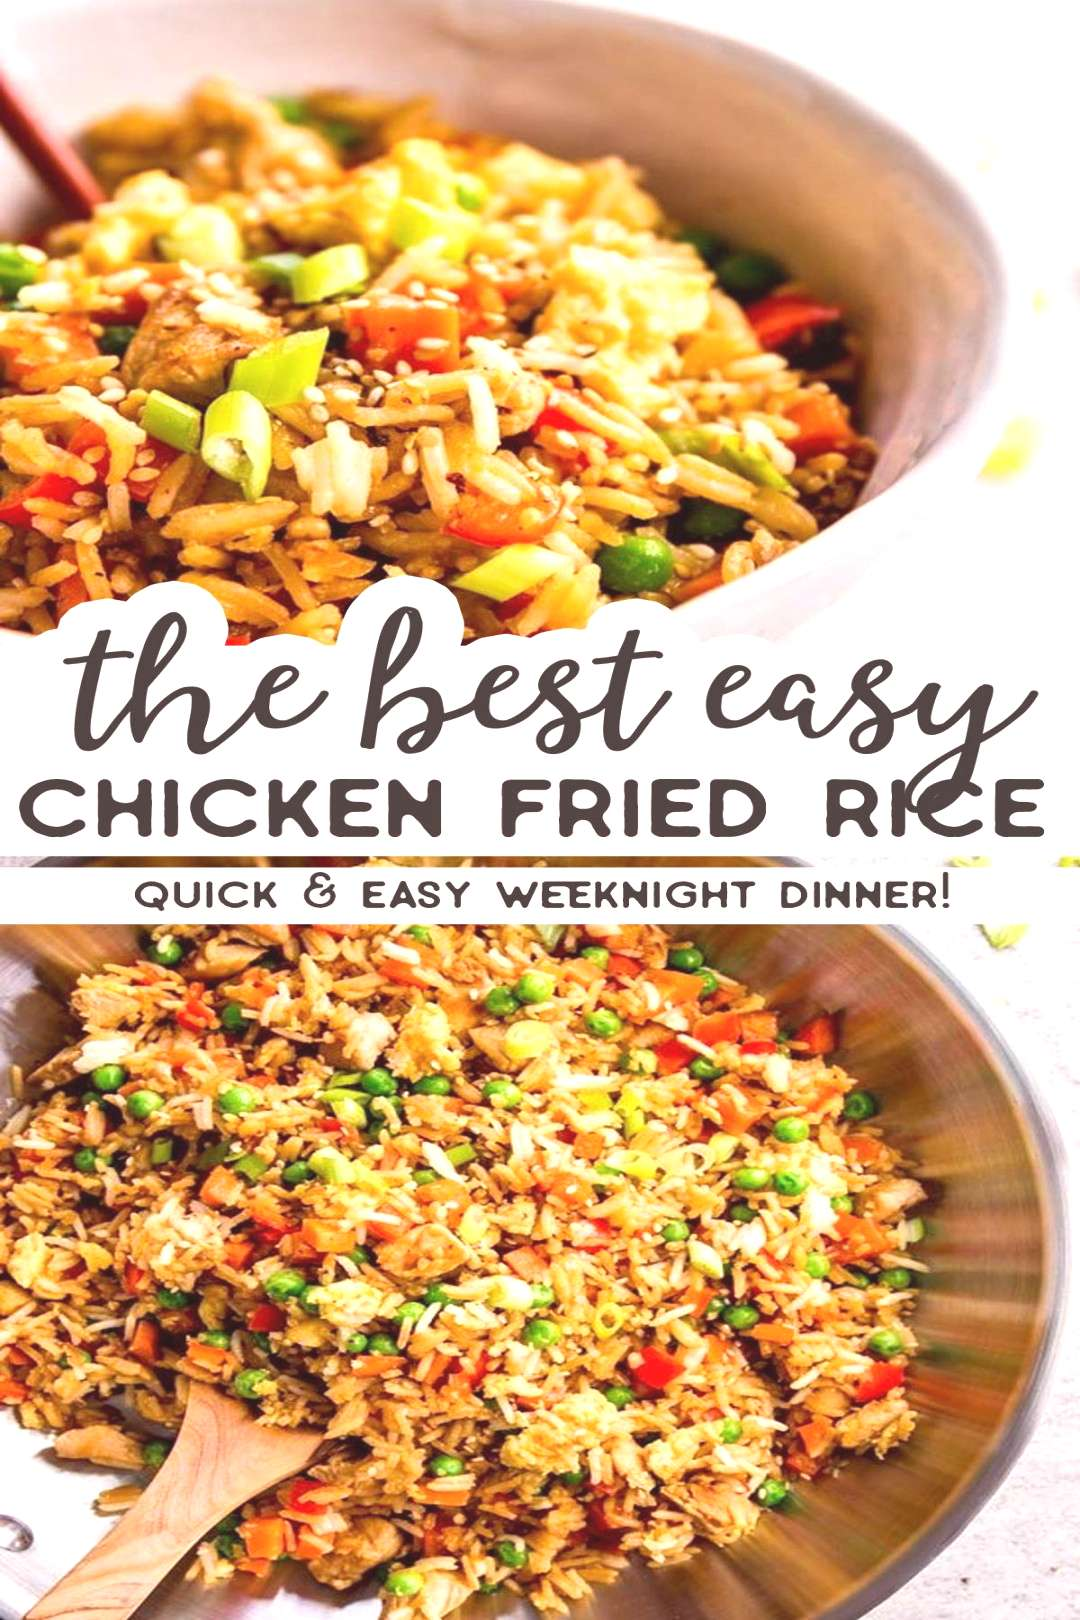 Easy Chicken Fried Rice Easy Chicken Fried Rice is a quick and simple dinner you can make any night